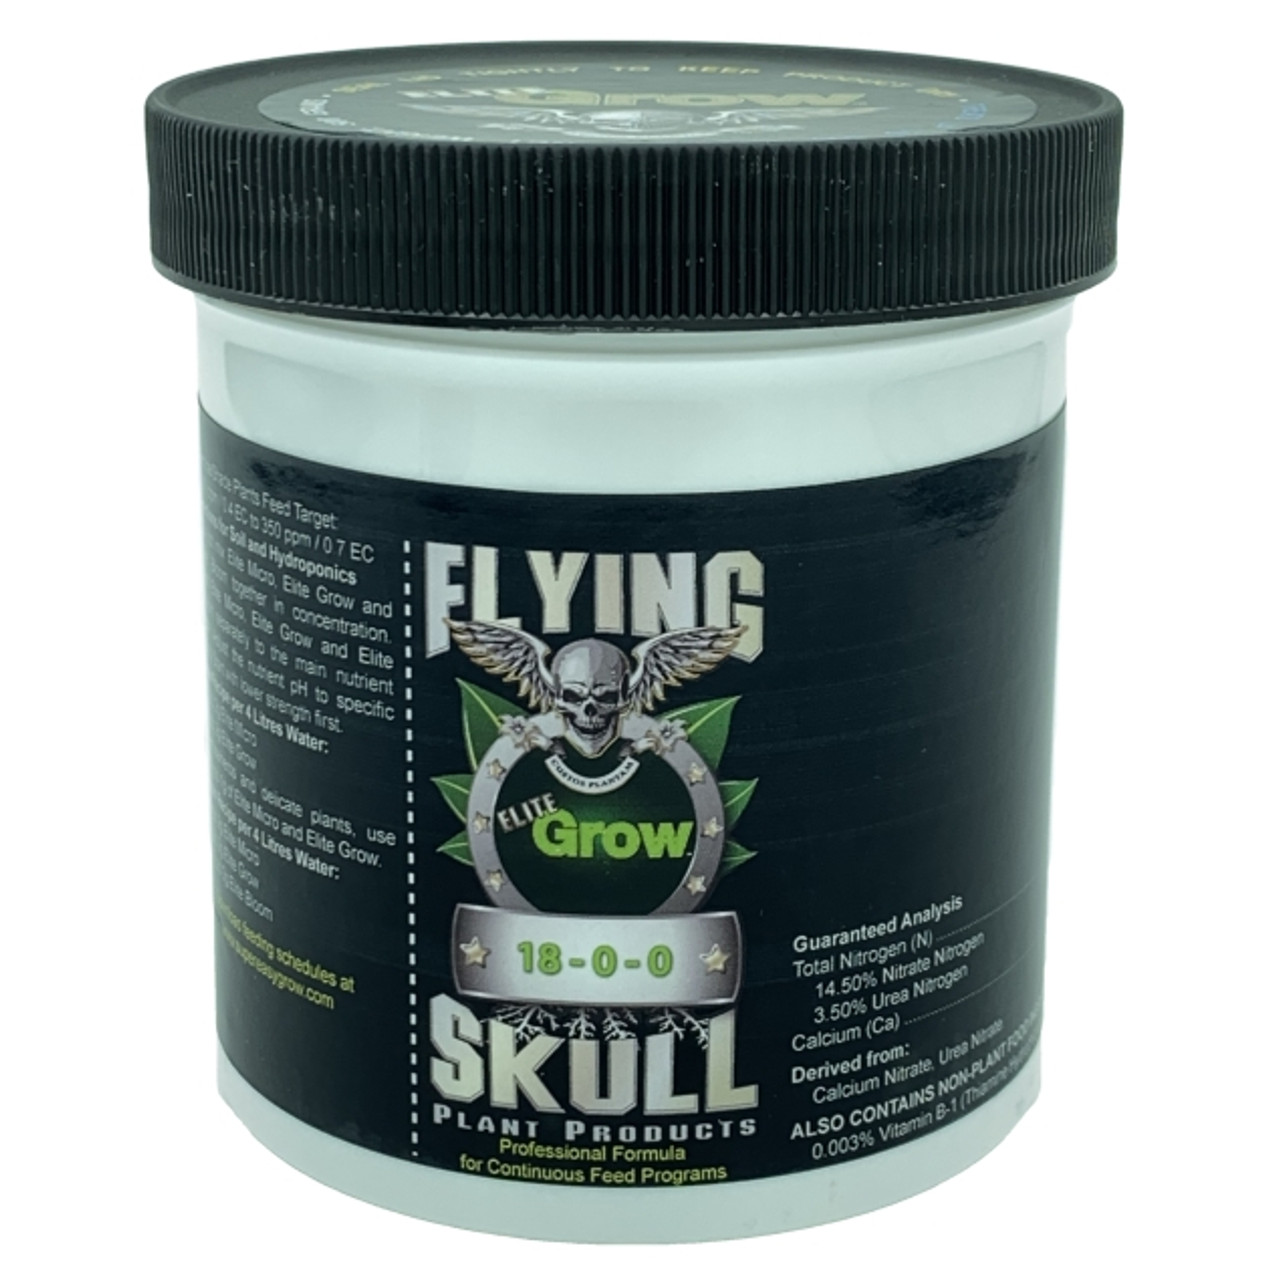 Flying SKull Elite Grow 500g Container